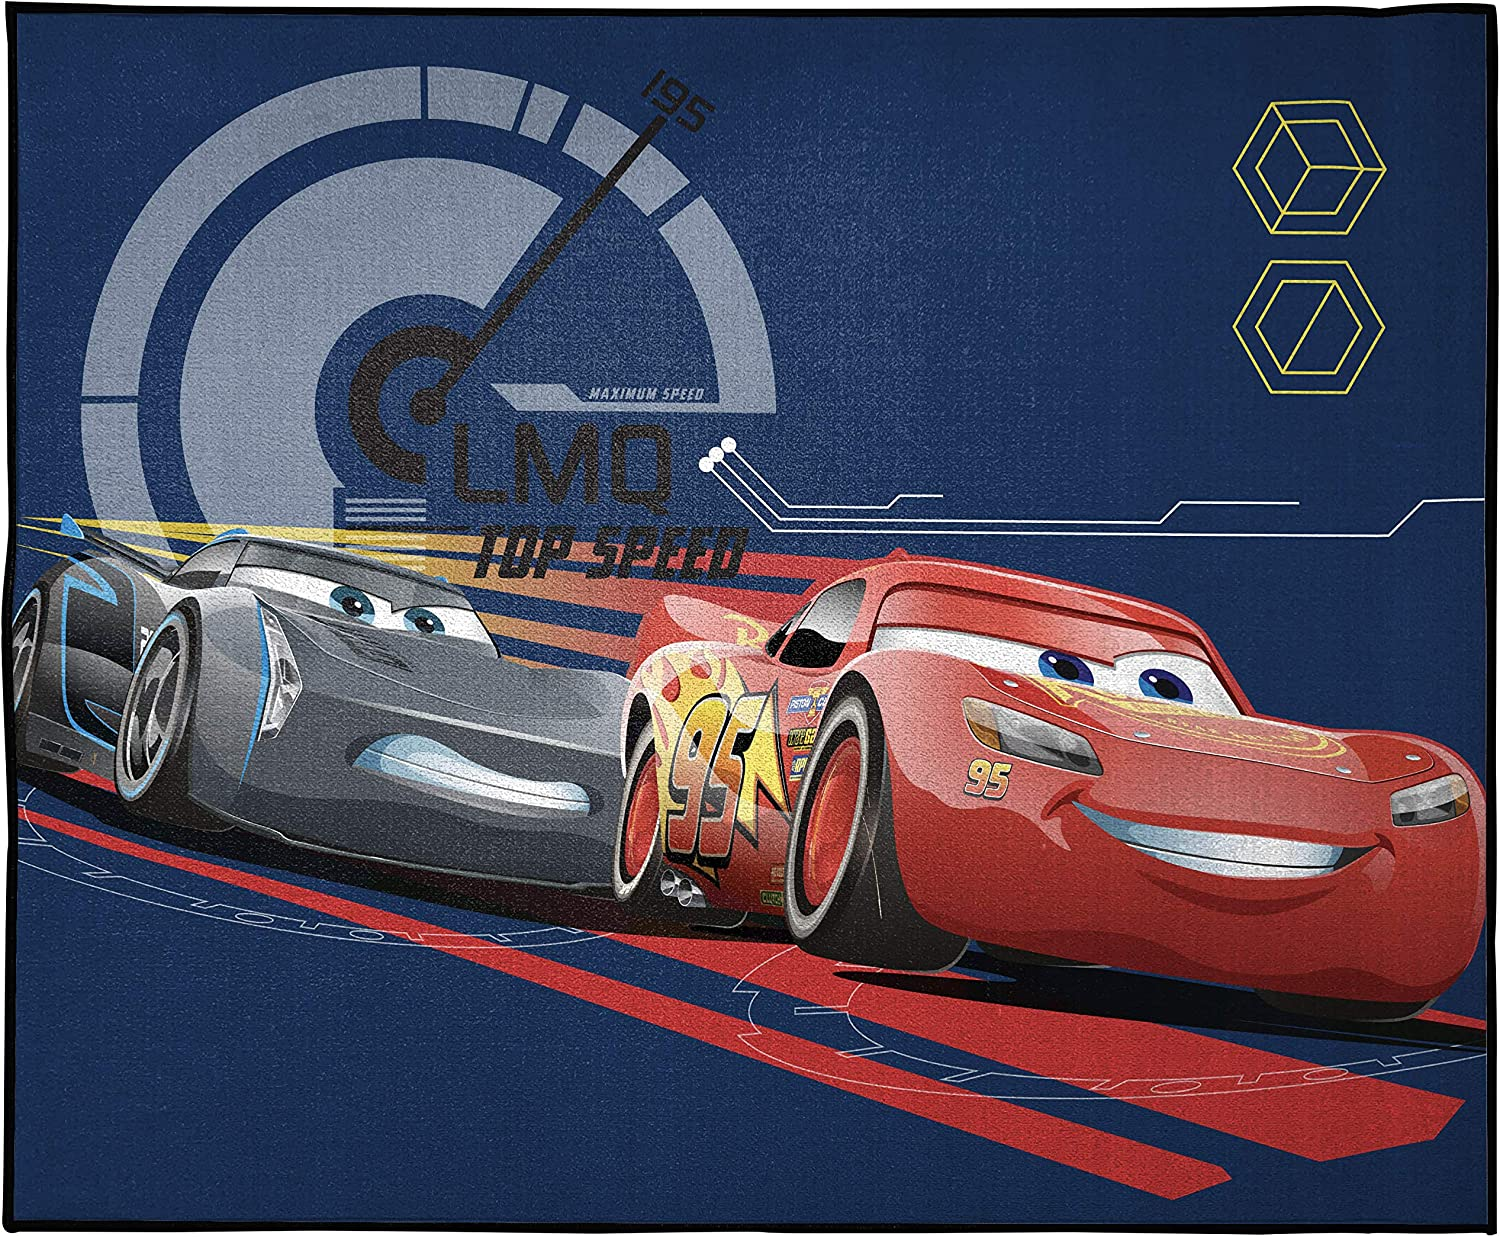 Disney Pixar Cars Max Throttle Kids Room Rug - Large Area Rug Measures 4 x 5 Feet - Features Lightning McQueen & Jackson Storm (Offical Disney Pixar Product)